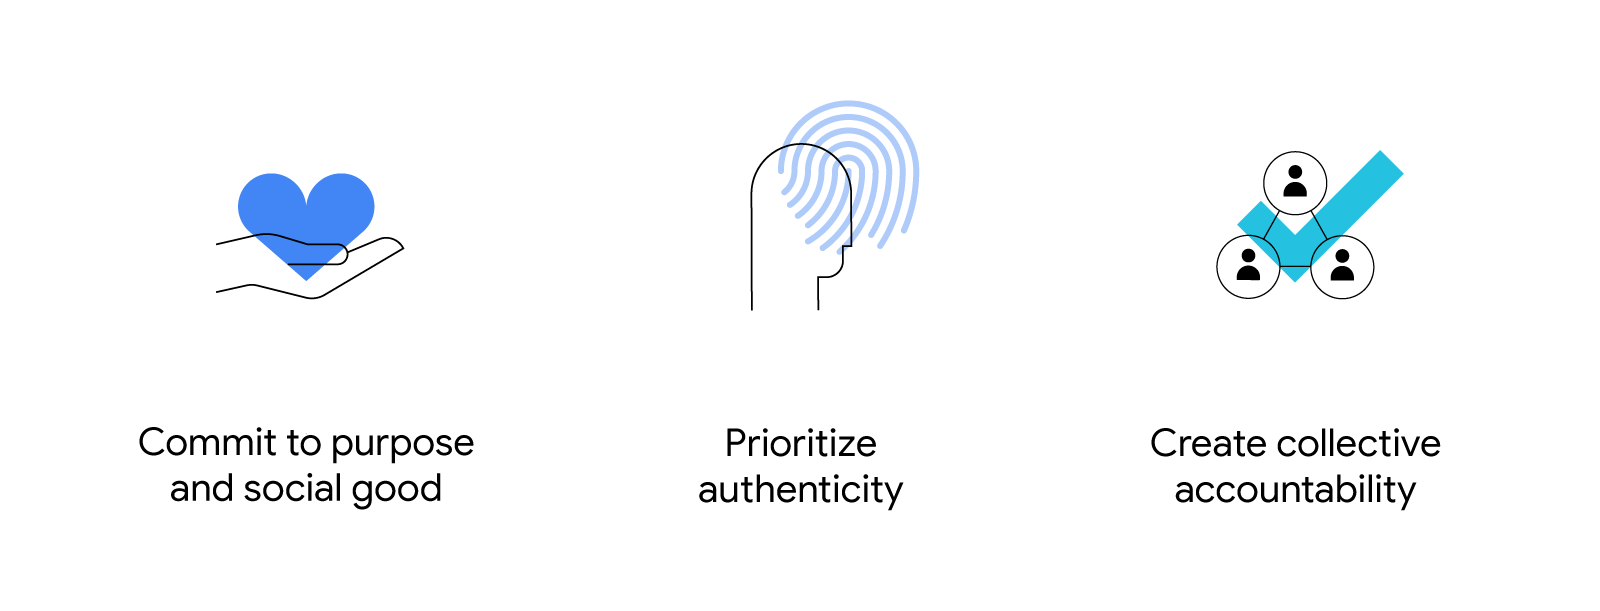 Illustrated iconography, like a heart in hand, a thumbprint, and a web of people, represents the ideas of commitment to purpose and social good, prioritization of authenticity, and creation of collective accountability